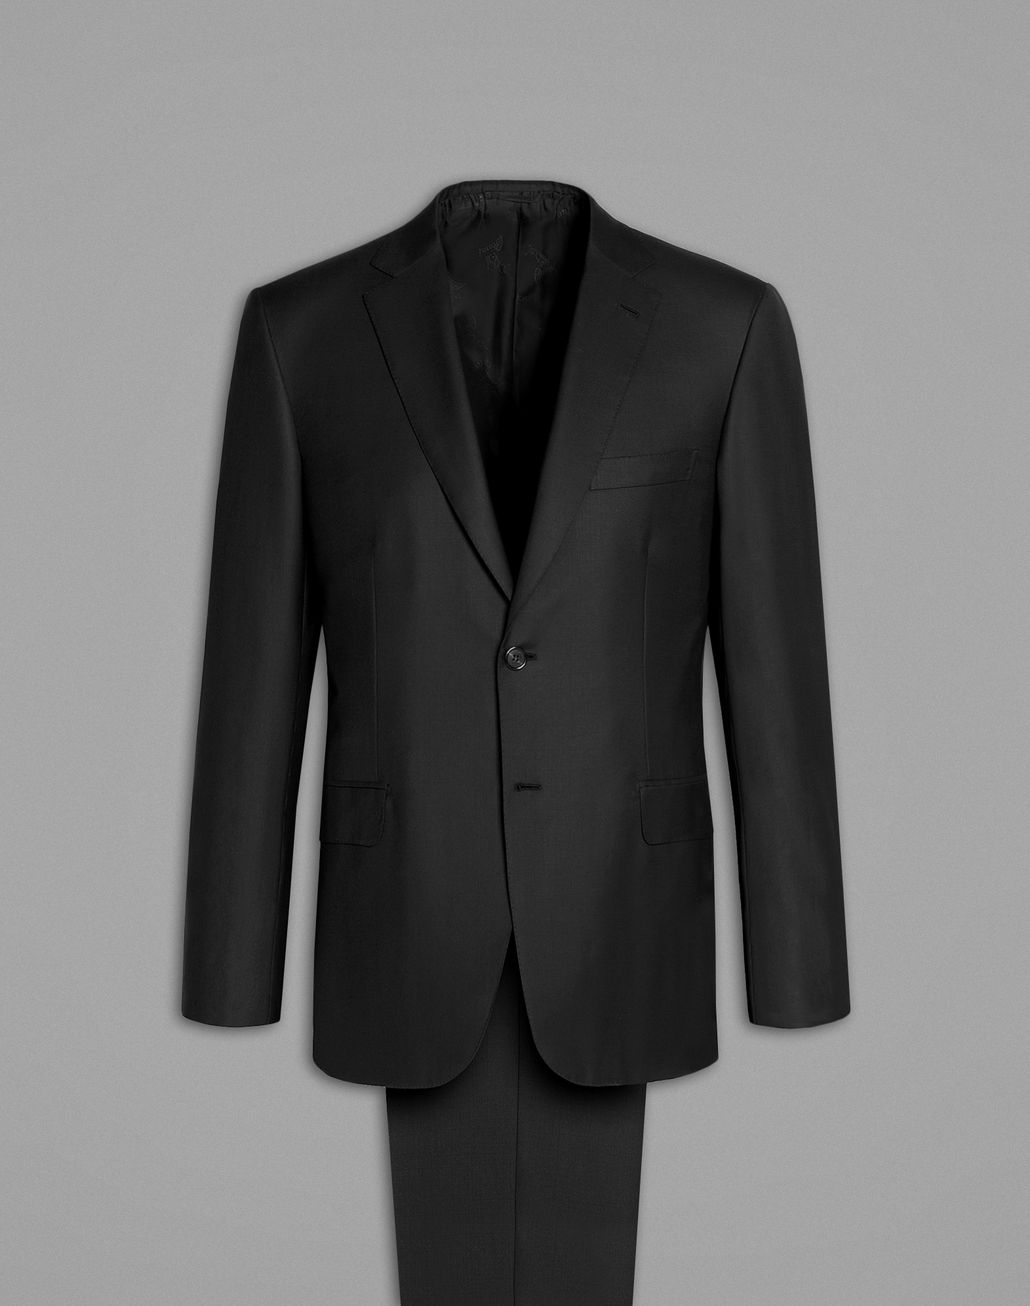 BRIONI Black Brunico Suit Suits & Jackets Man f